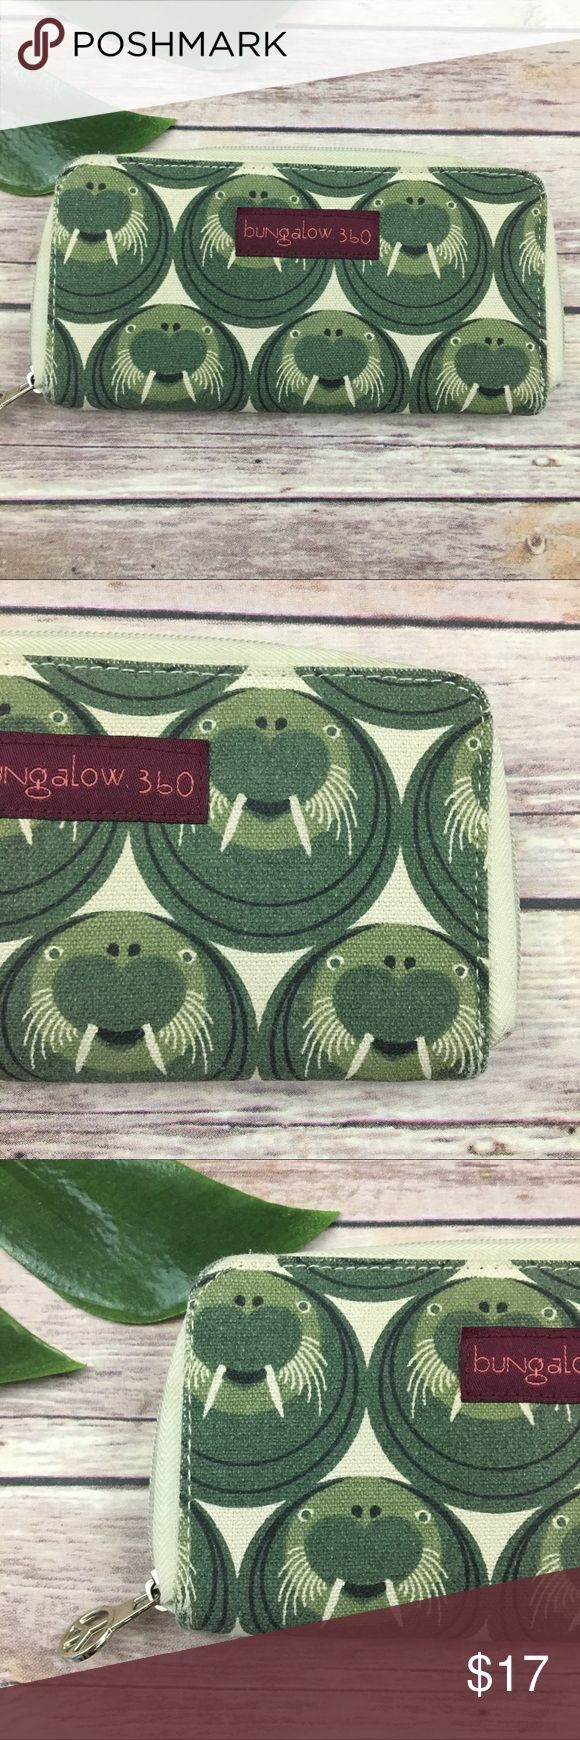 Bungalow 360 green walrus print wallet Bungalow 360 walrus zip around canvas wallet. It is free from any rips or stains but does have some wear, please see pictures. It measures about 7 inches long, about 4 inches tall and about 1 inch deep. bungalow 360 Bags Wallets